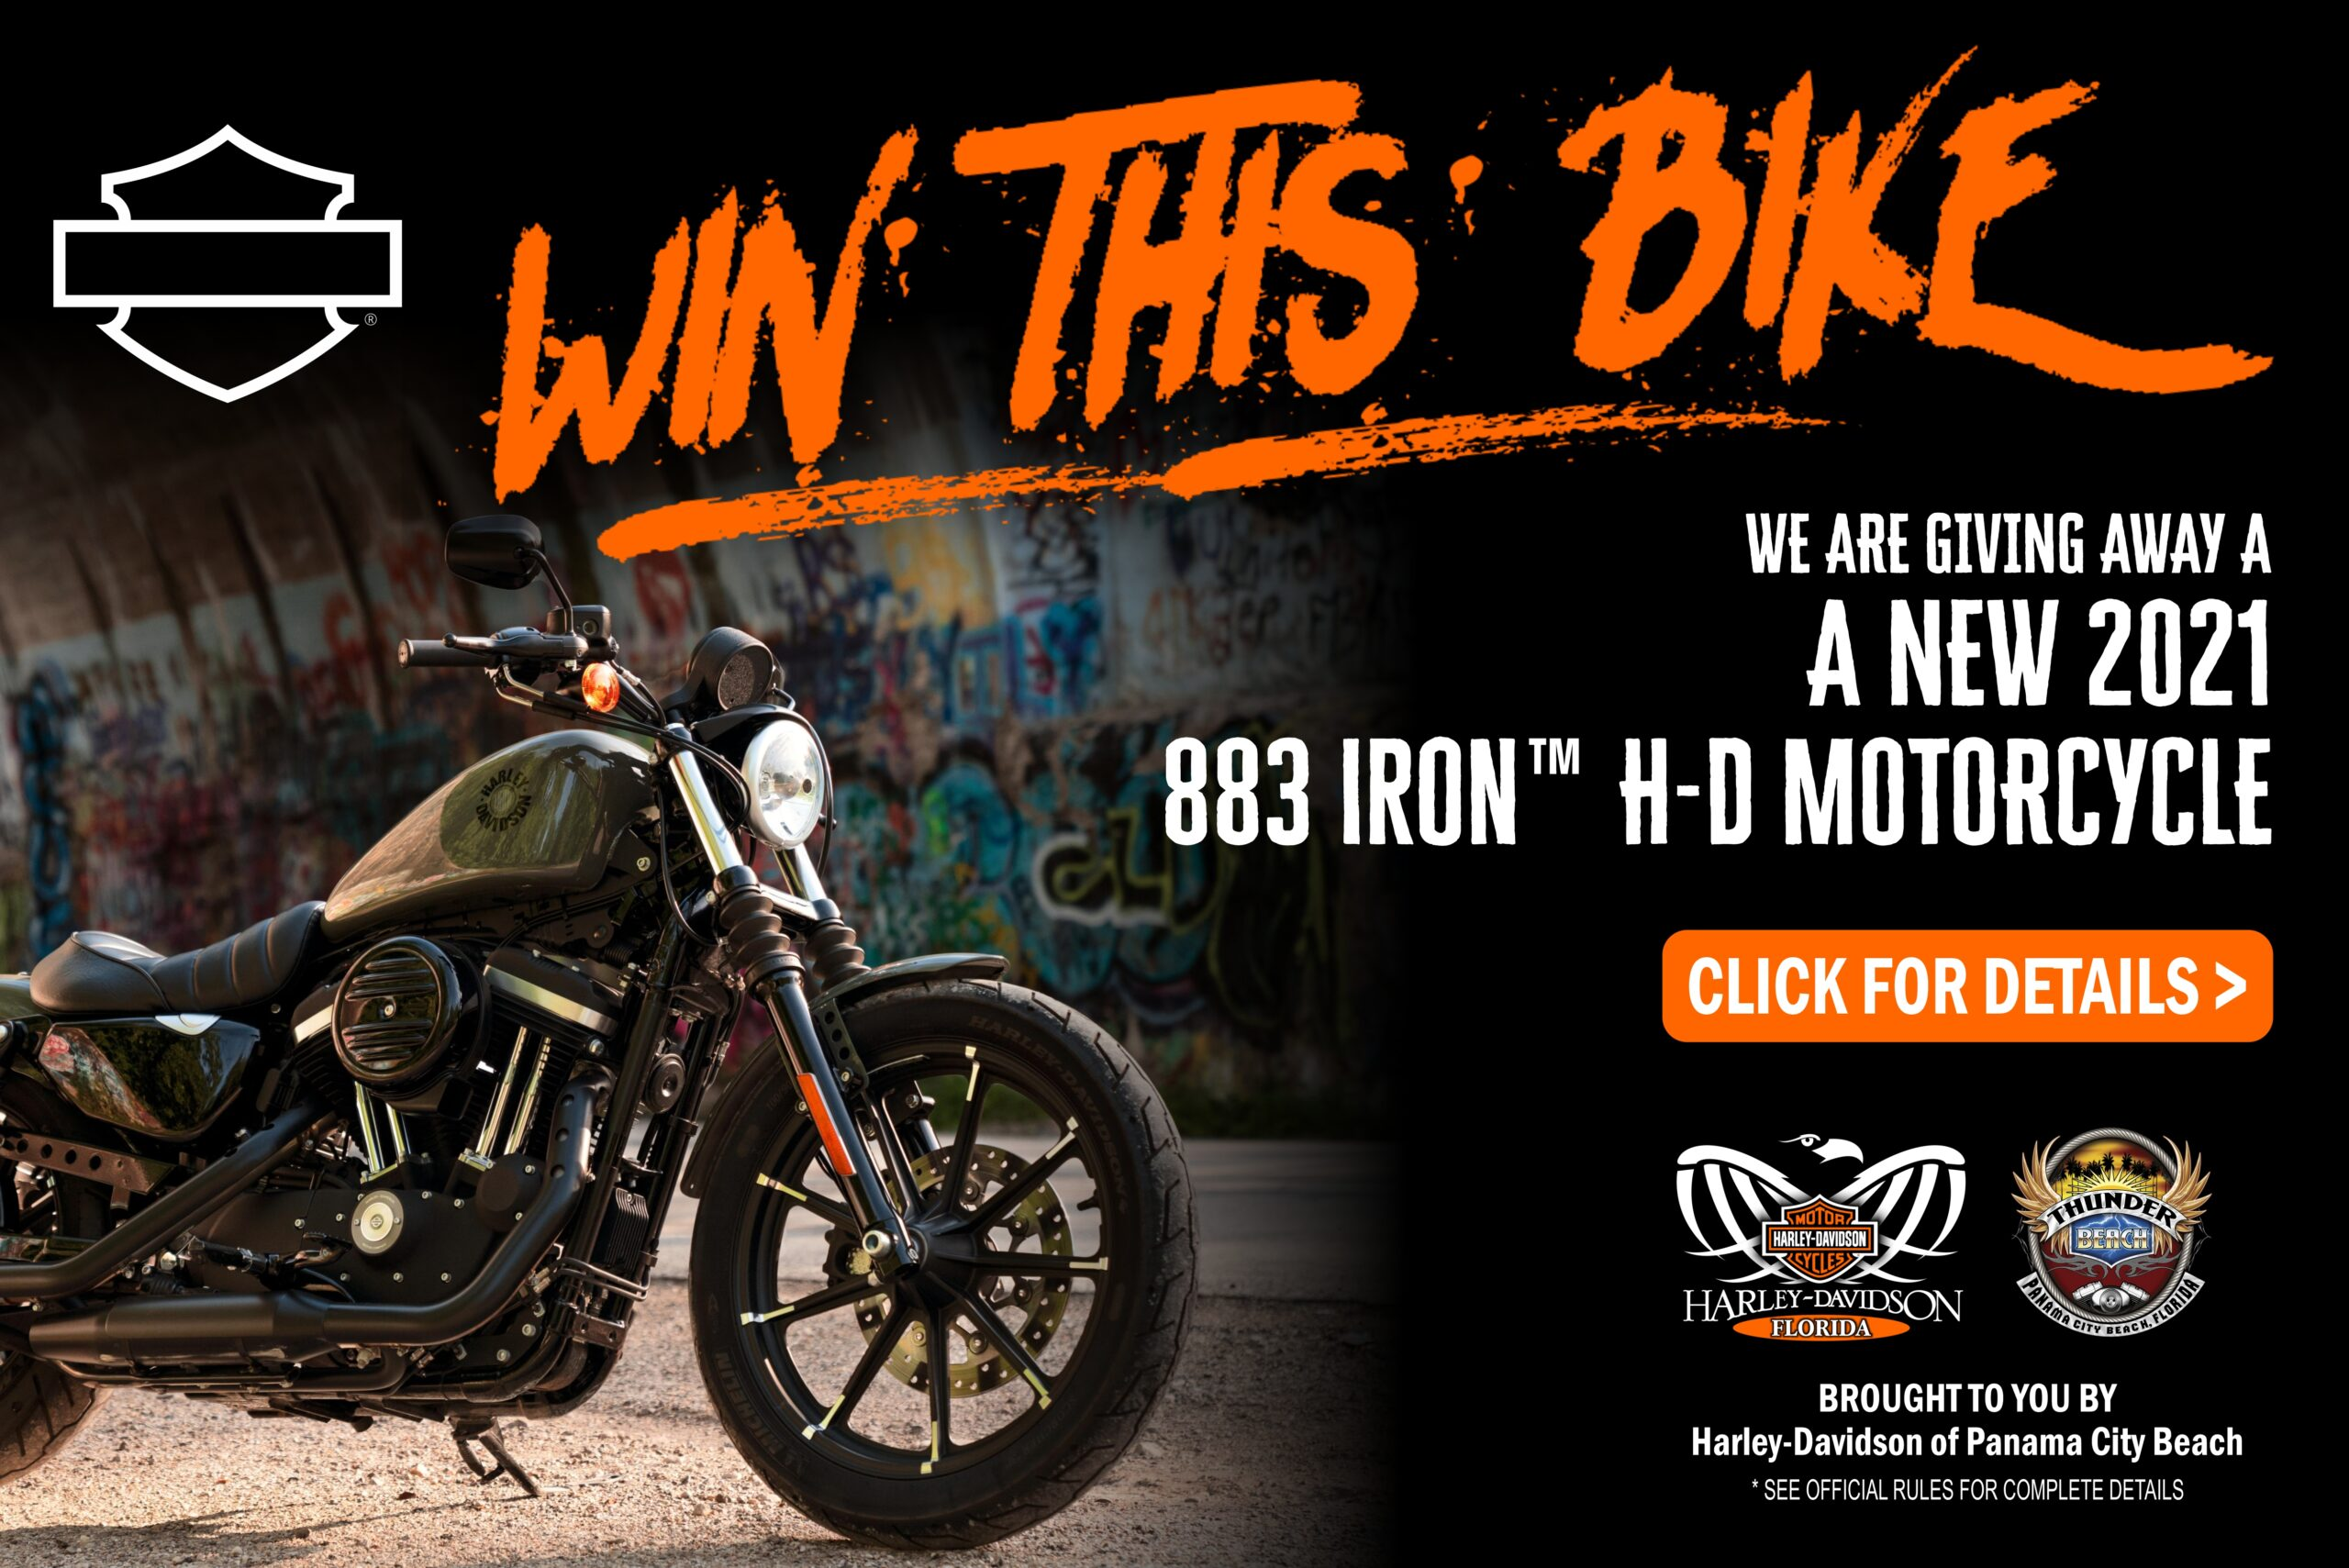 Win this Bike